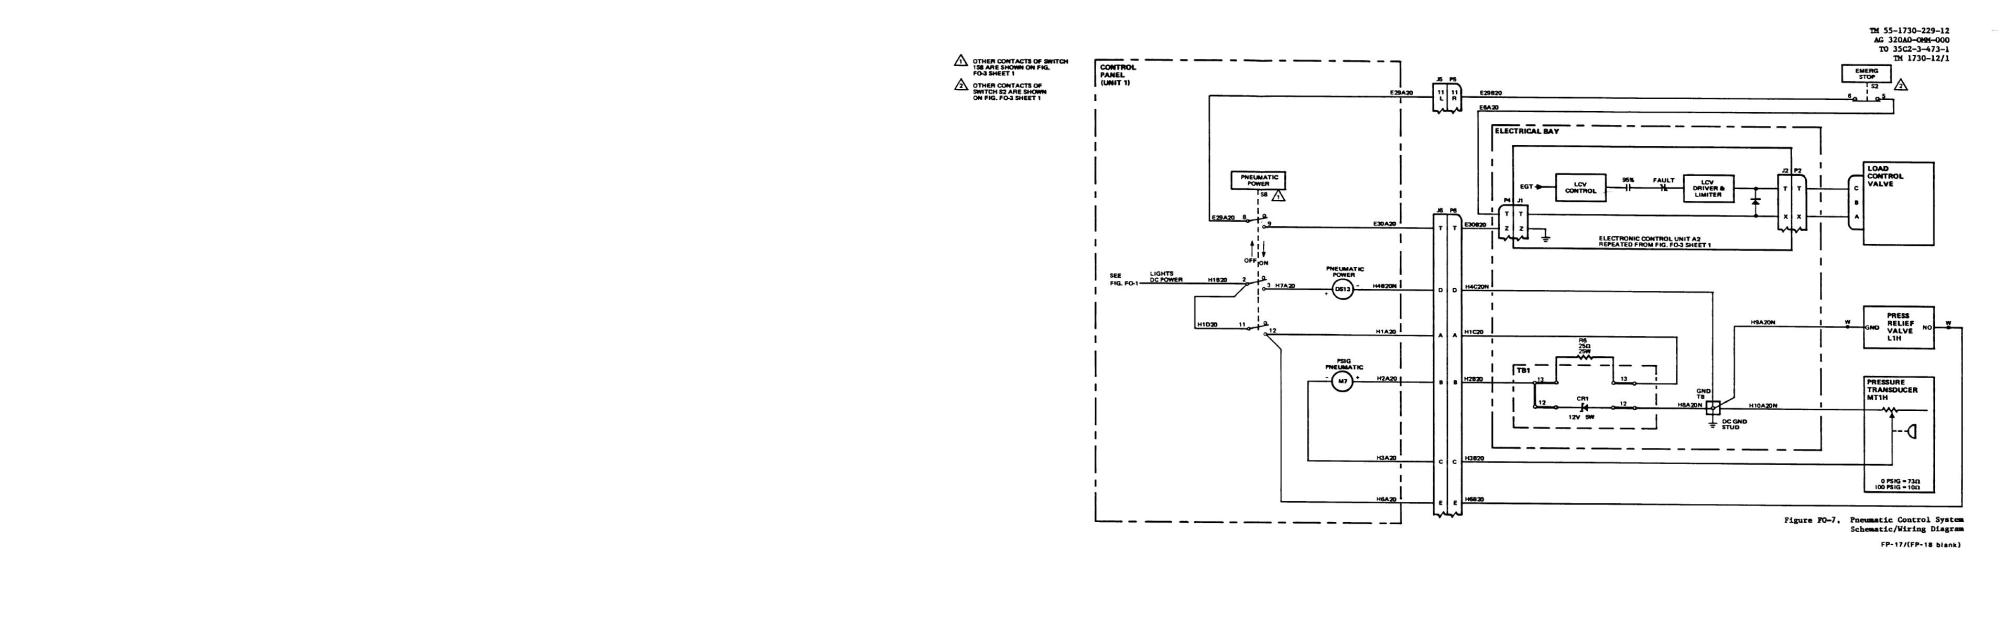 hight resolution of pneumatic control system schematic wiring diagram sheet 1 of 2